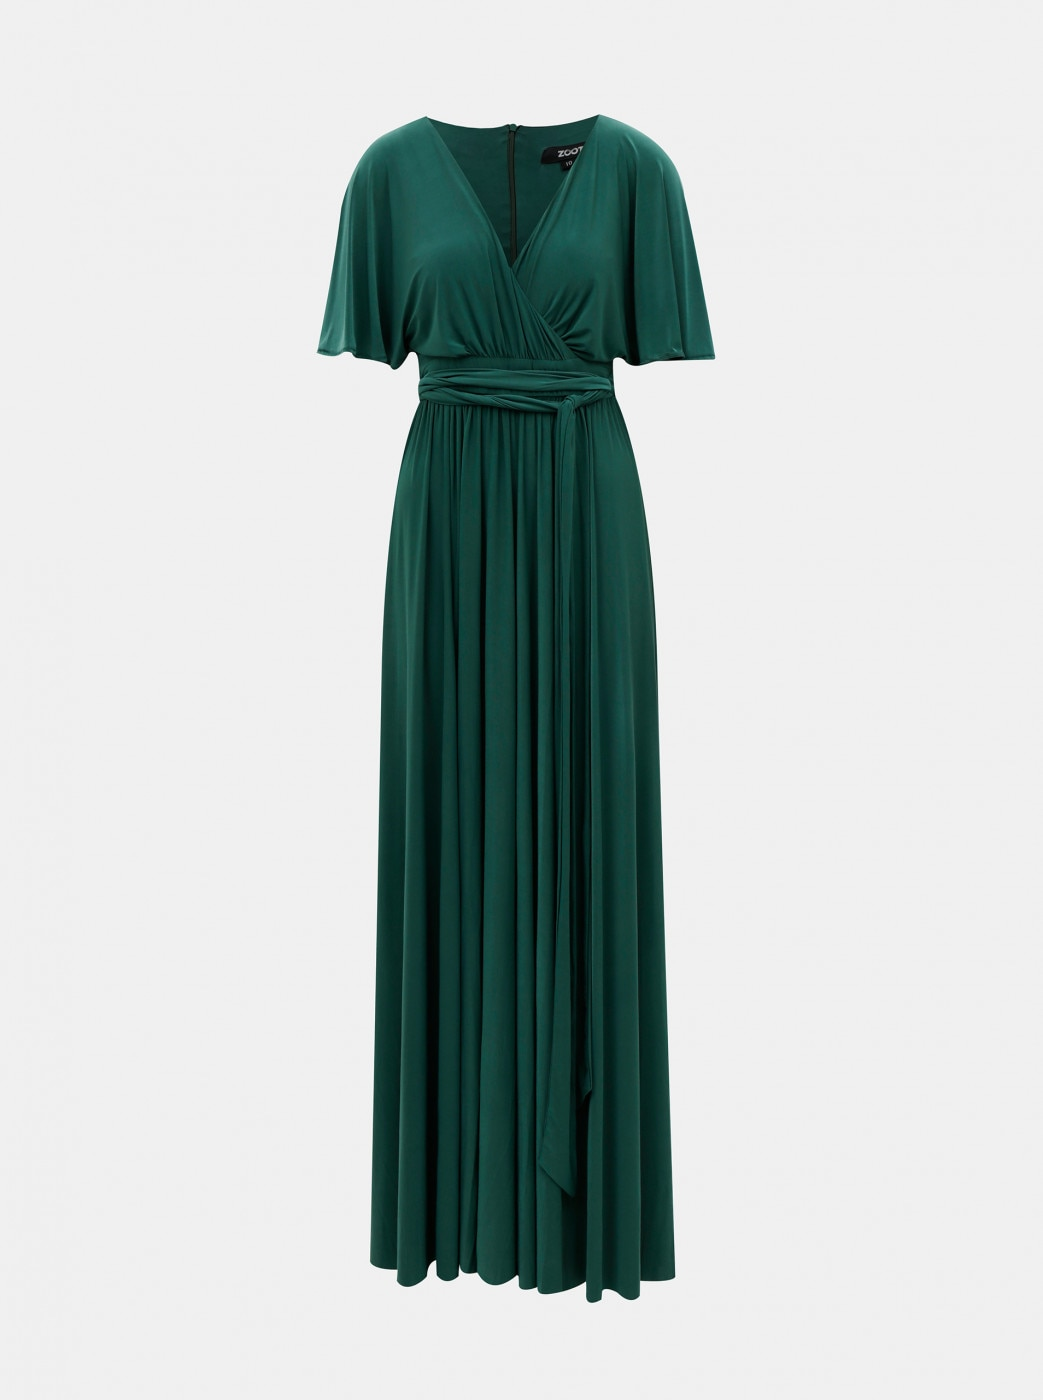 Green maxi dress with zoot slit